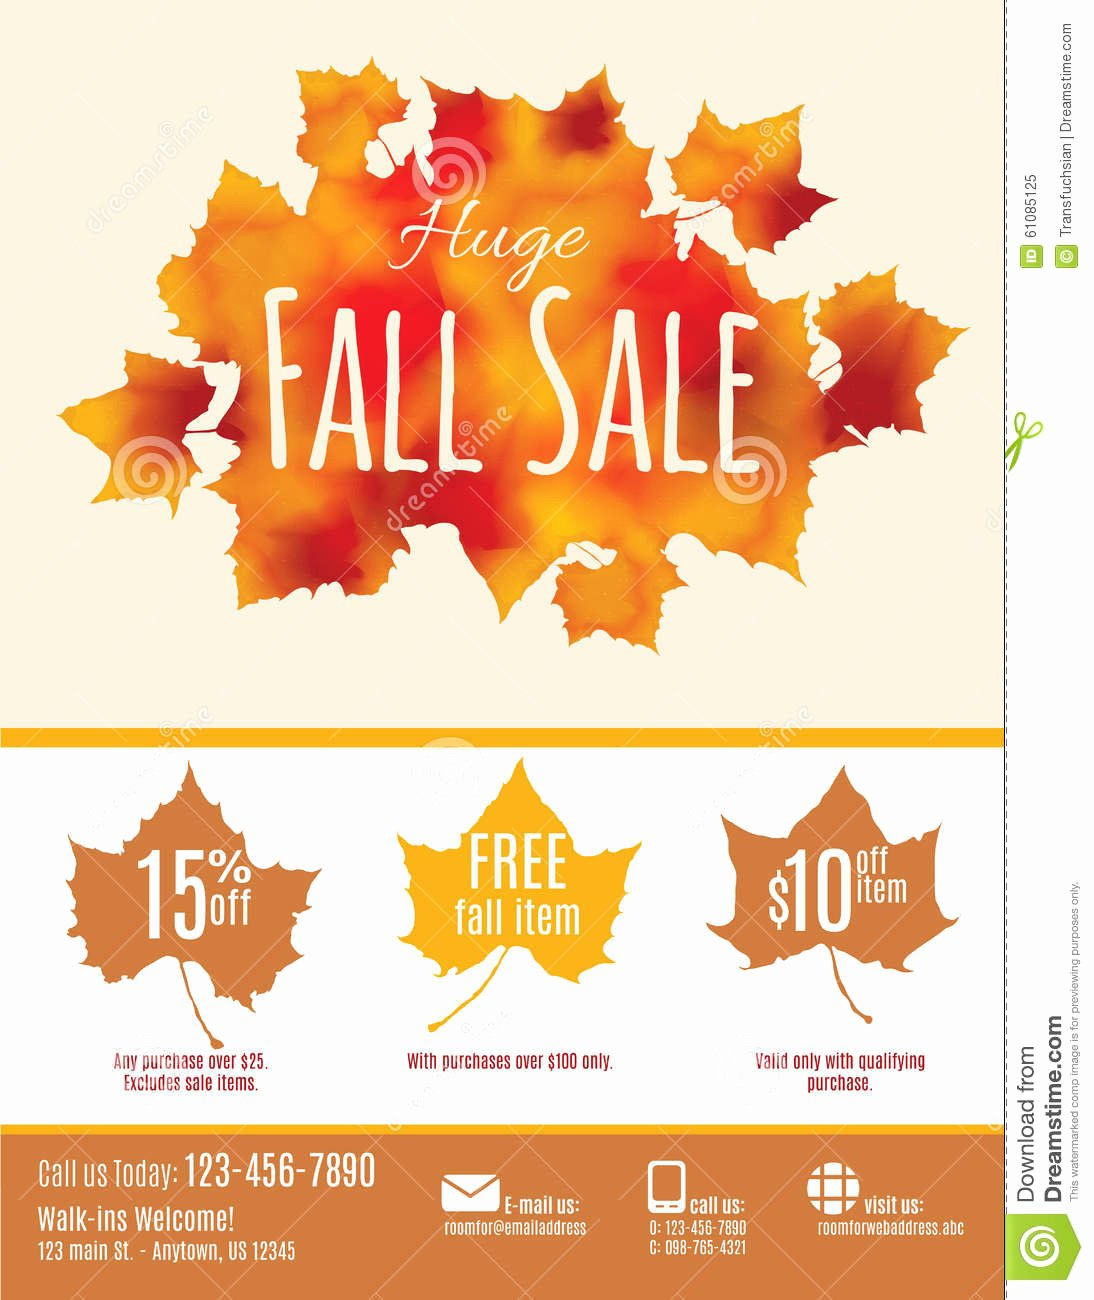 Free Fall Flyer Template Best Of Fall Sale Flyer Template Stock Vector I and the Best Fall